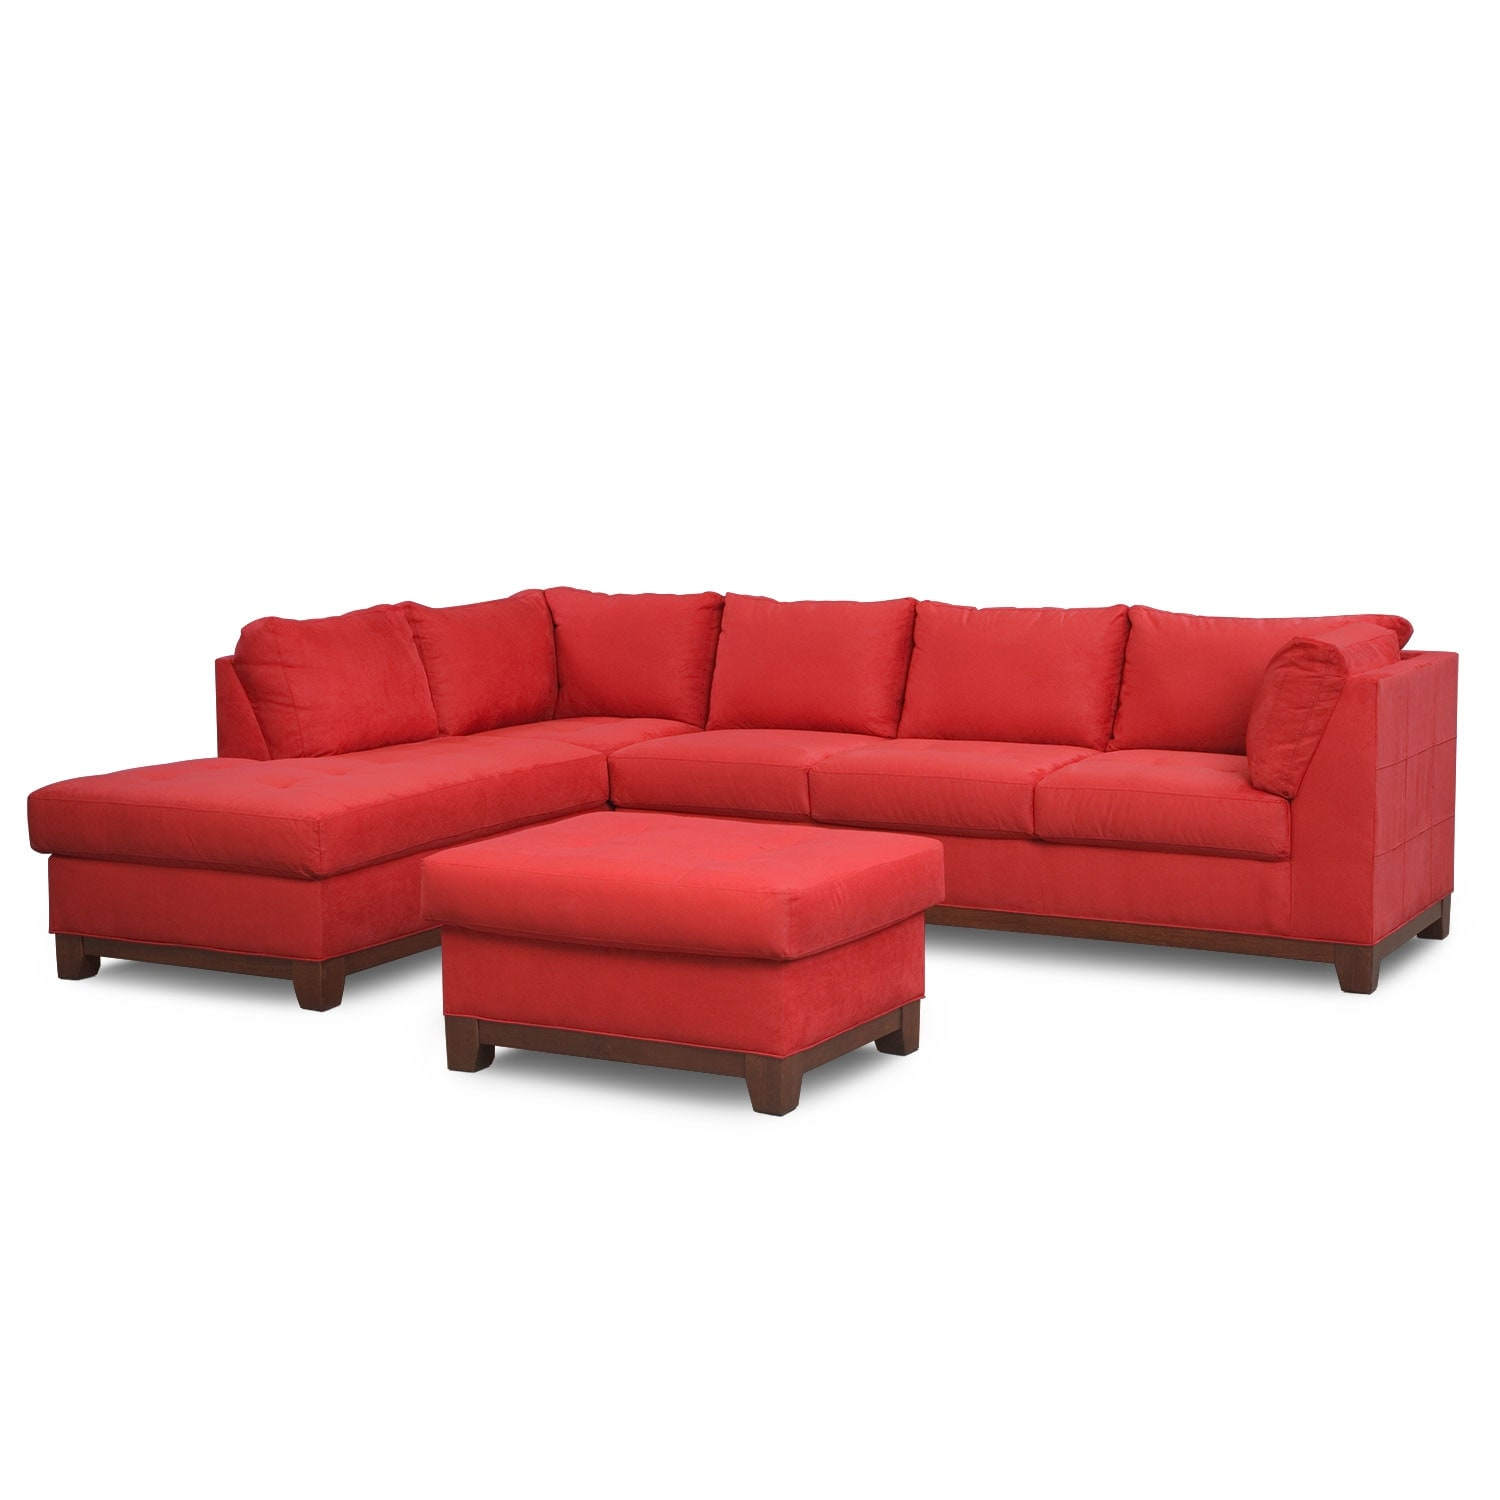 Soho 2-Piece Sectional with Left-Facing Chaise and Ottoman - Red